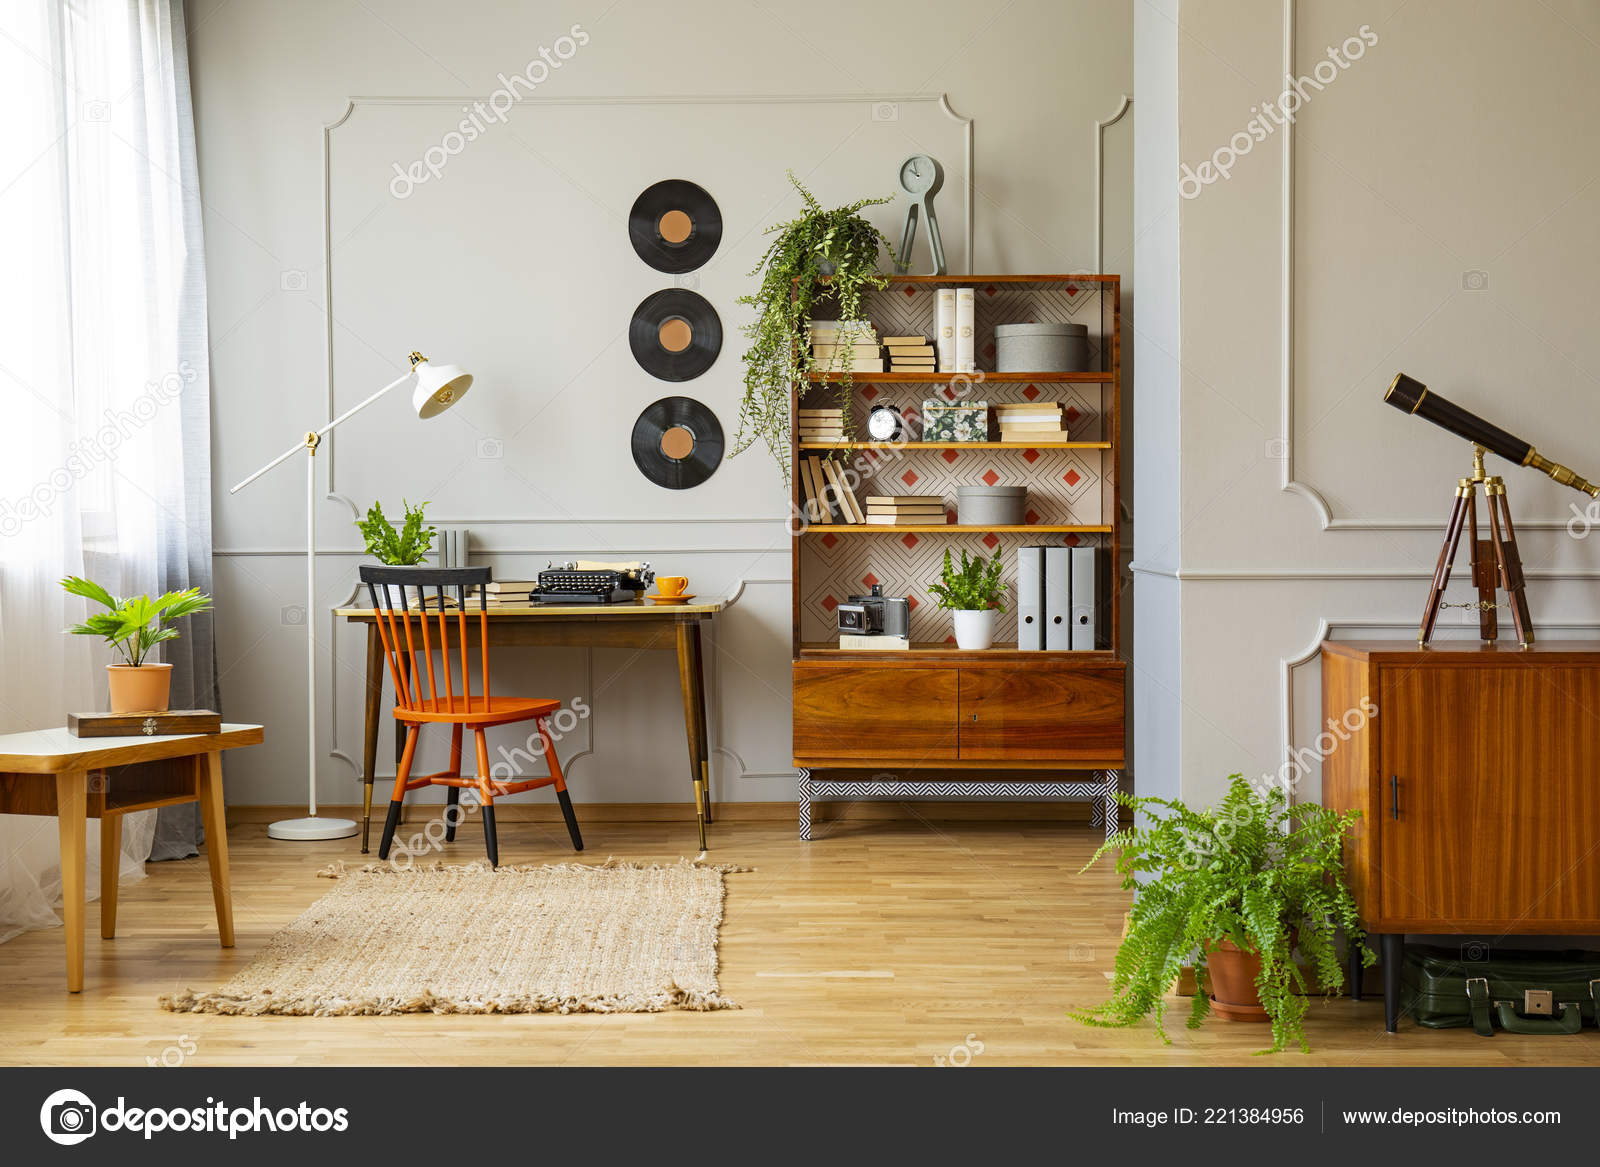 Retro home office Black Vinyl Records Decorations On Gray Wall With Molding And Wooden Furniture In Retro Home Office Interior For Writer Real Photo Depositphotos Vinyl Records Decorations Gray Wall Molding Wooden Furniture Retro